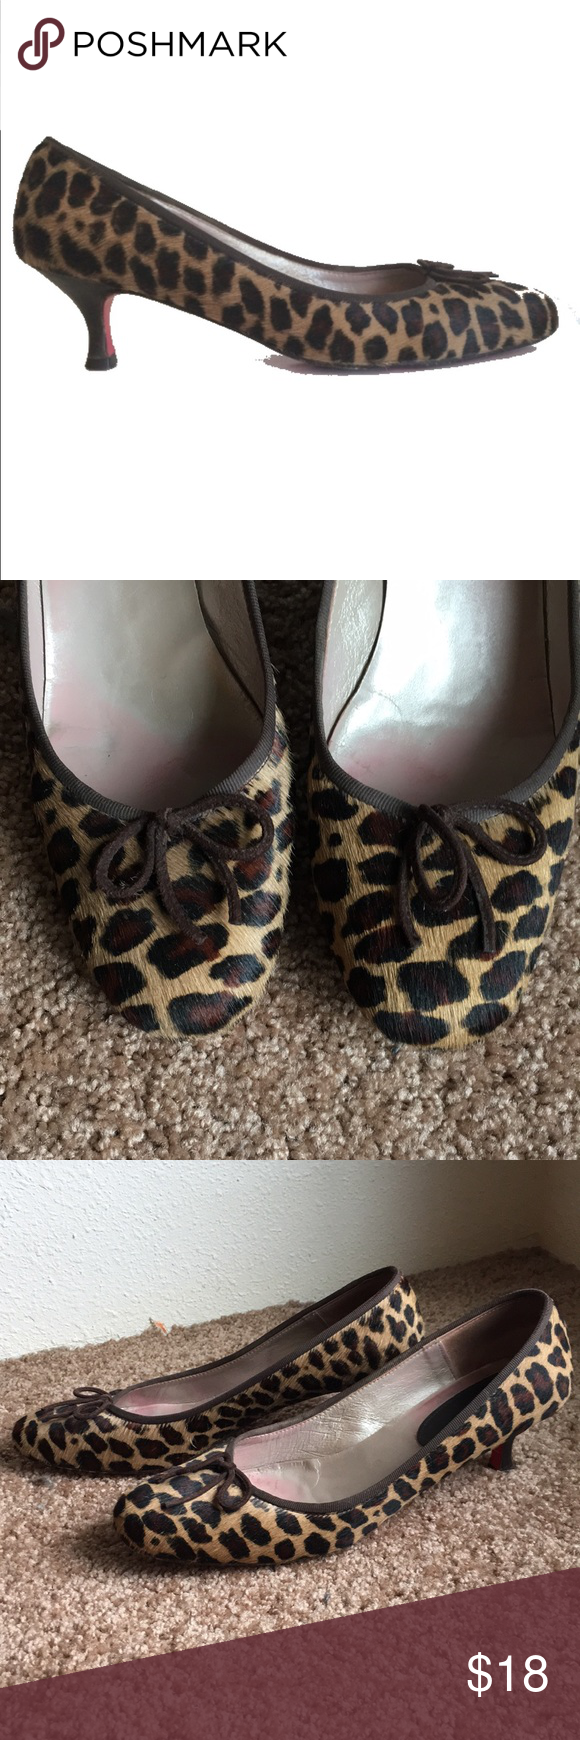 4077e36dd0da Boden Leopard Print Ponyhair kitten heels, sz 41 Worn, but still lots of  life